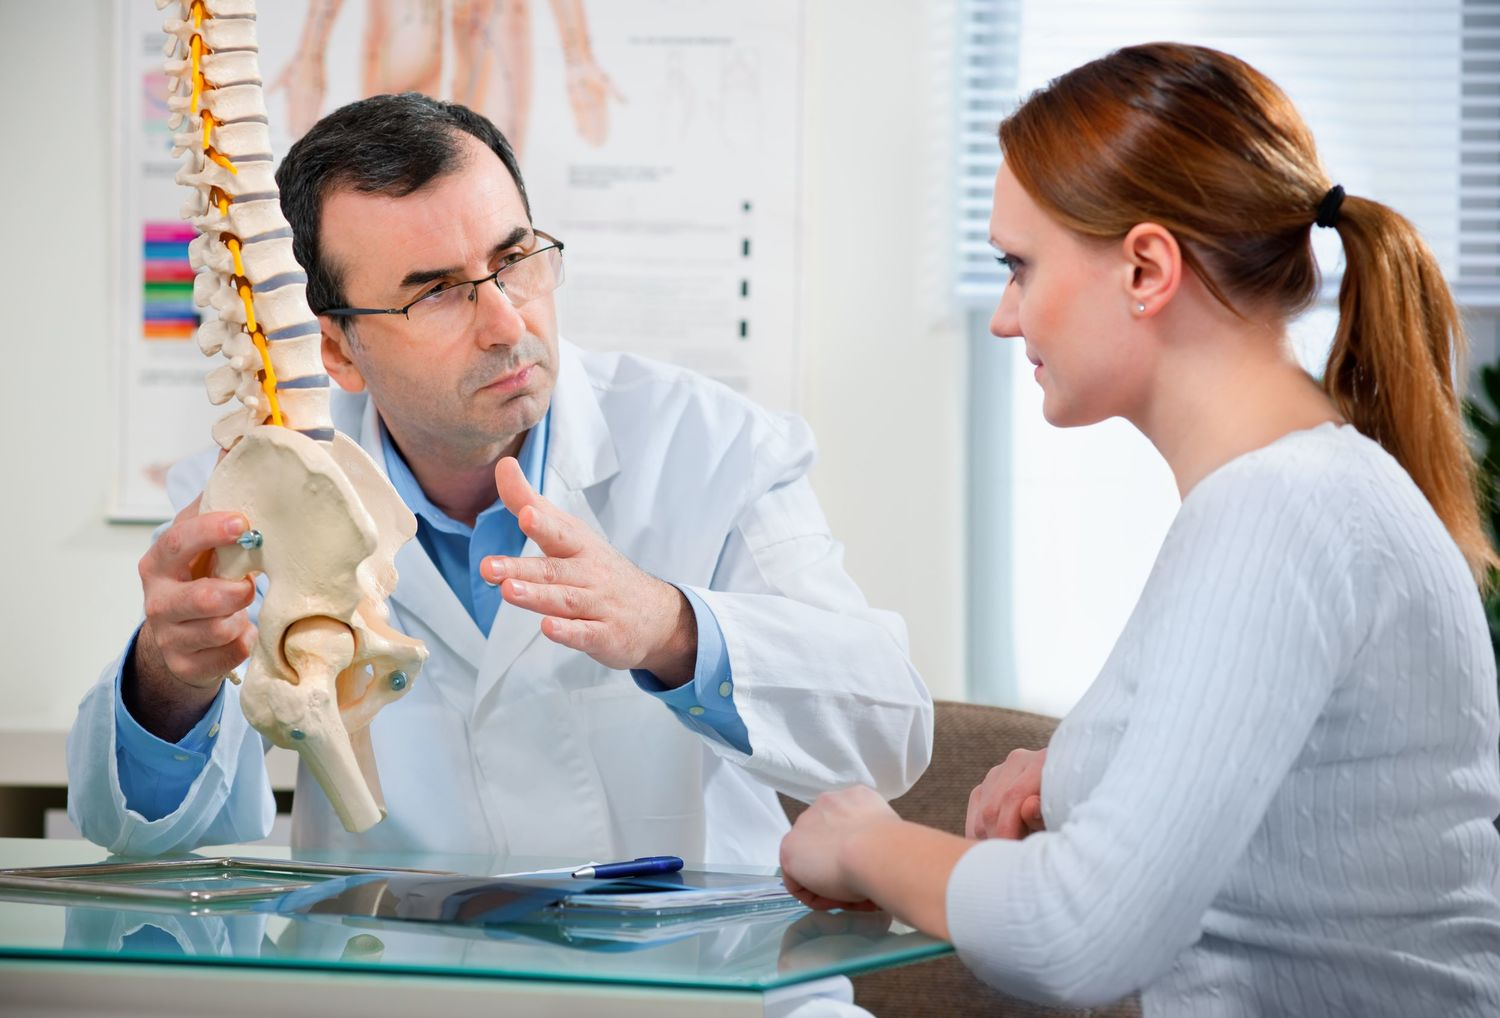 Health south physical therapy - Gindi Physical Therapy Lancaster South Carolina